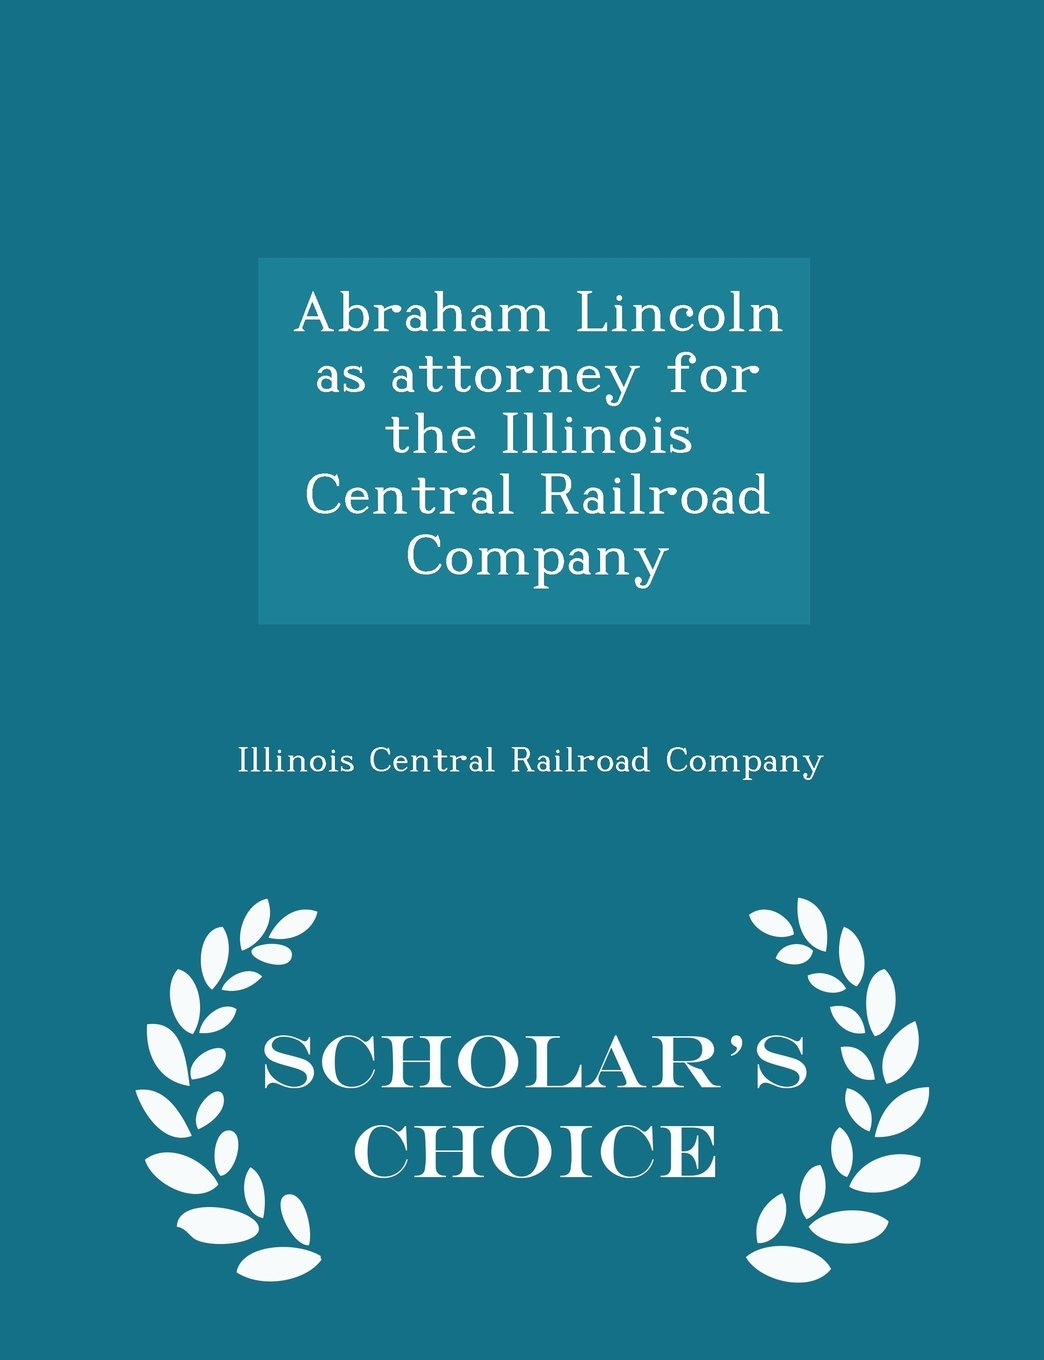 Download Abraham Lincoln as attorney for the Illinois Central Railroad Company  - Scholar's Choice Edition ebook